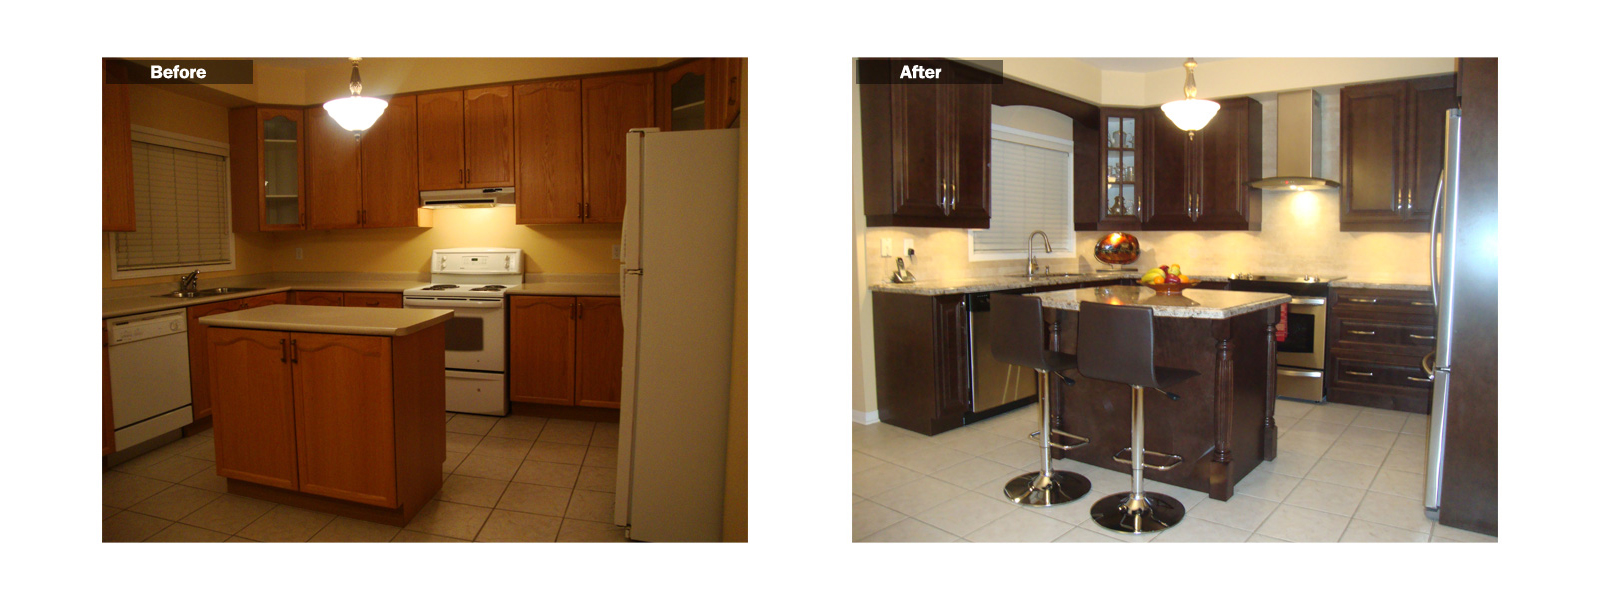 Reface Kitchen Cabinets Before And After Reface Kitchen Cabinets Lowes Galley Kitchen